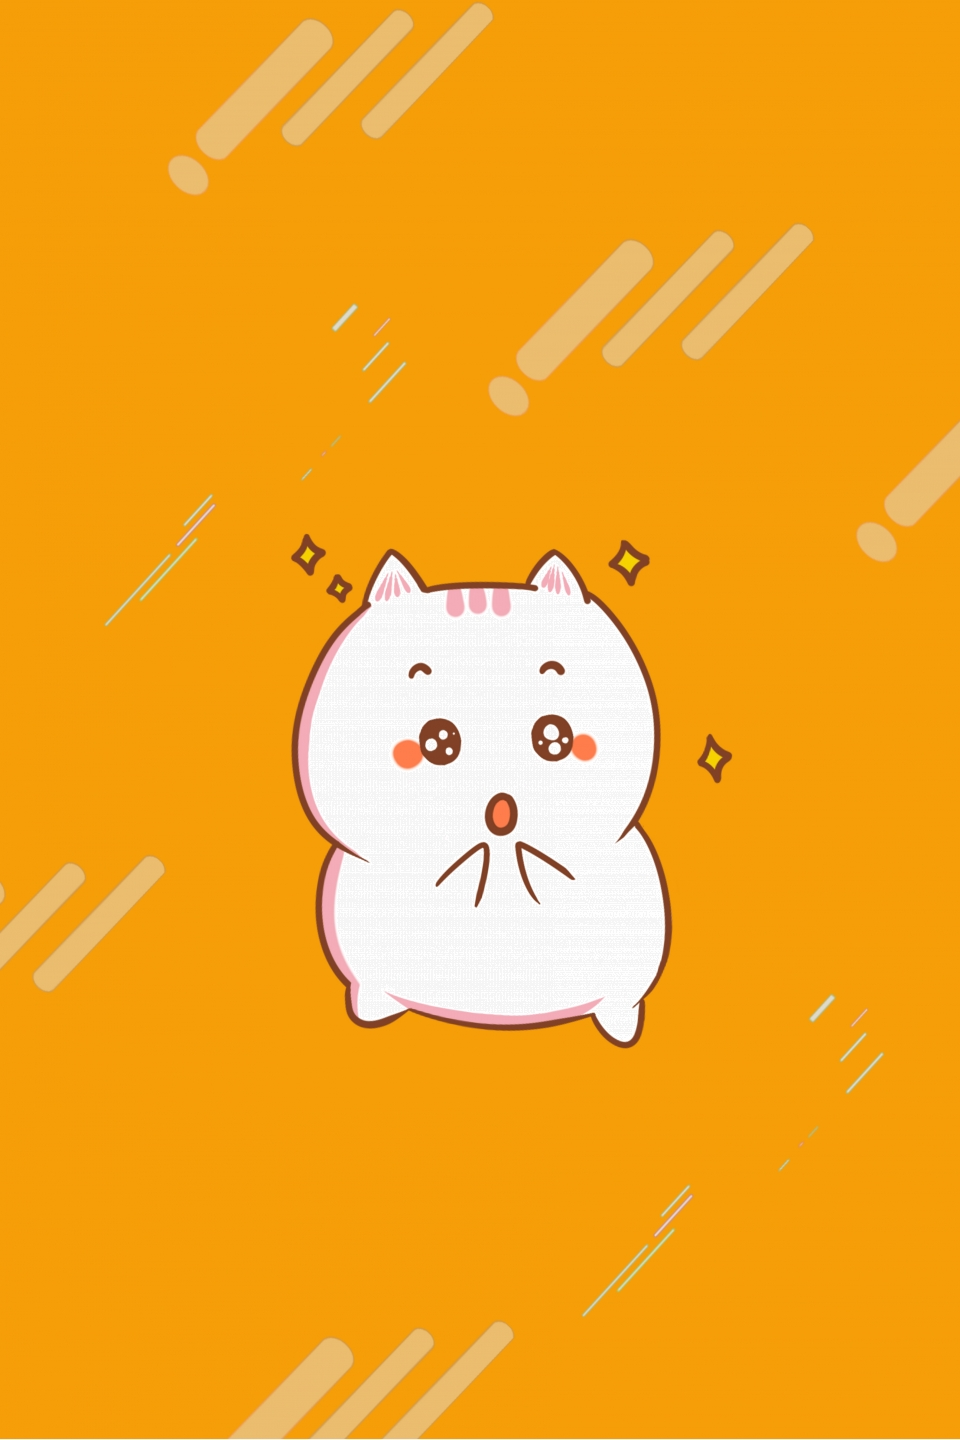 pngtree cartoon lucky cat h5 background image 141016